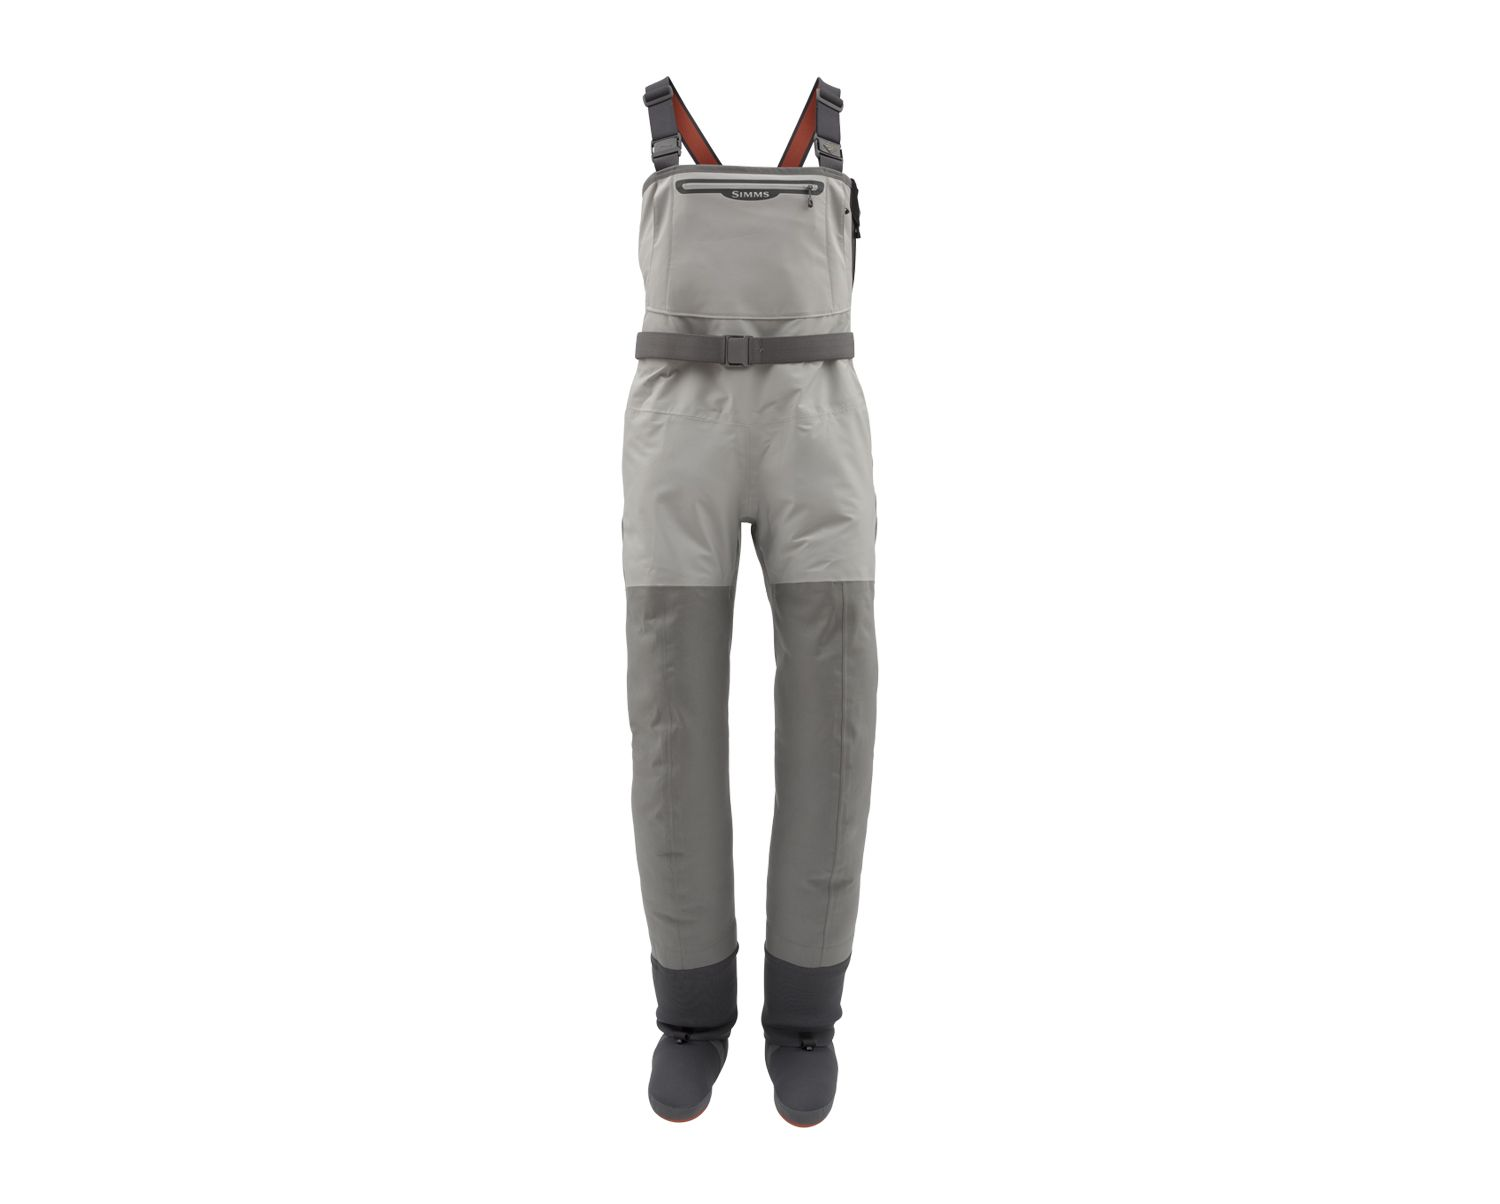 Simms Womens G3 Guide Z Stockingfoot Wader